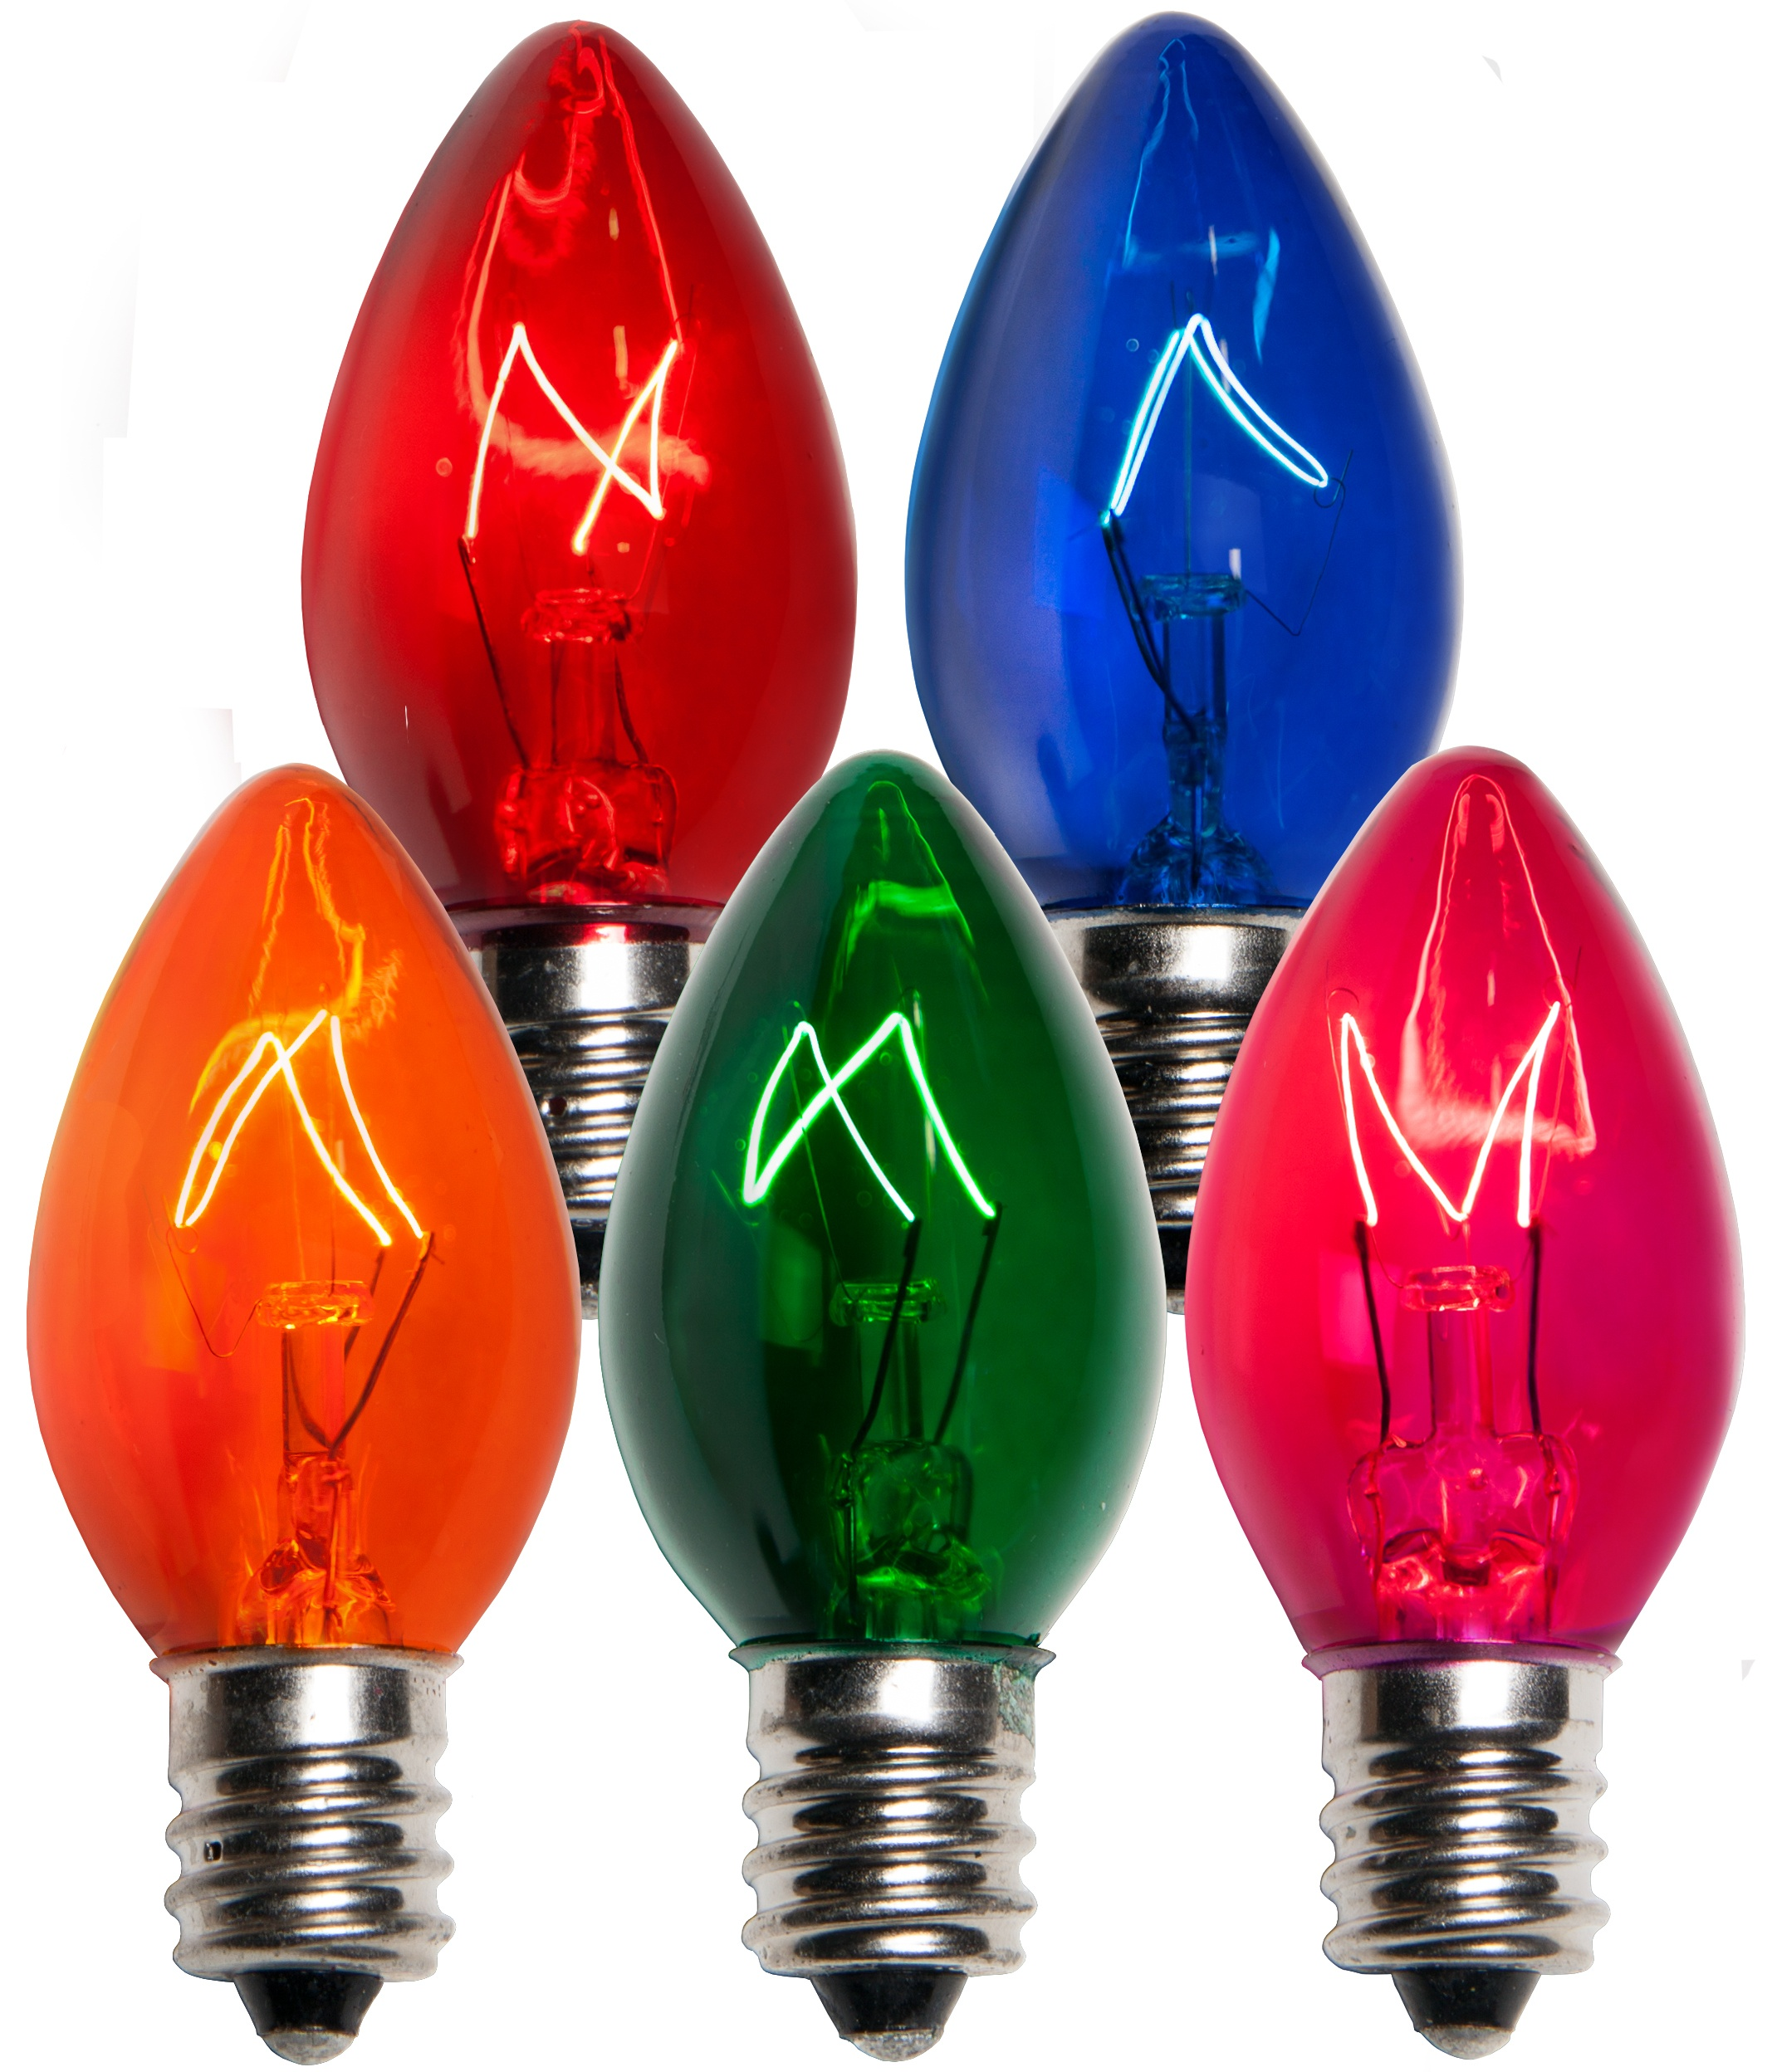 Led Christmas Light Bulbs